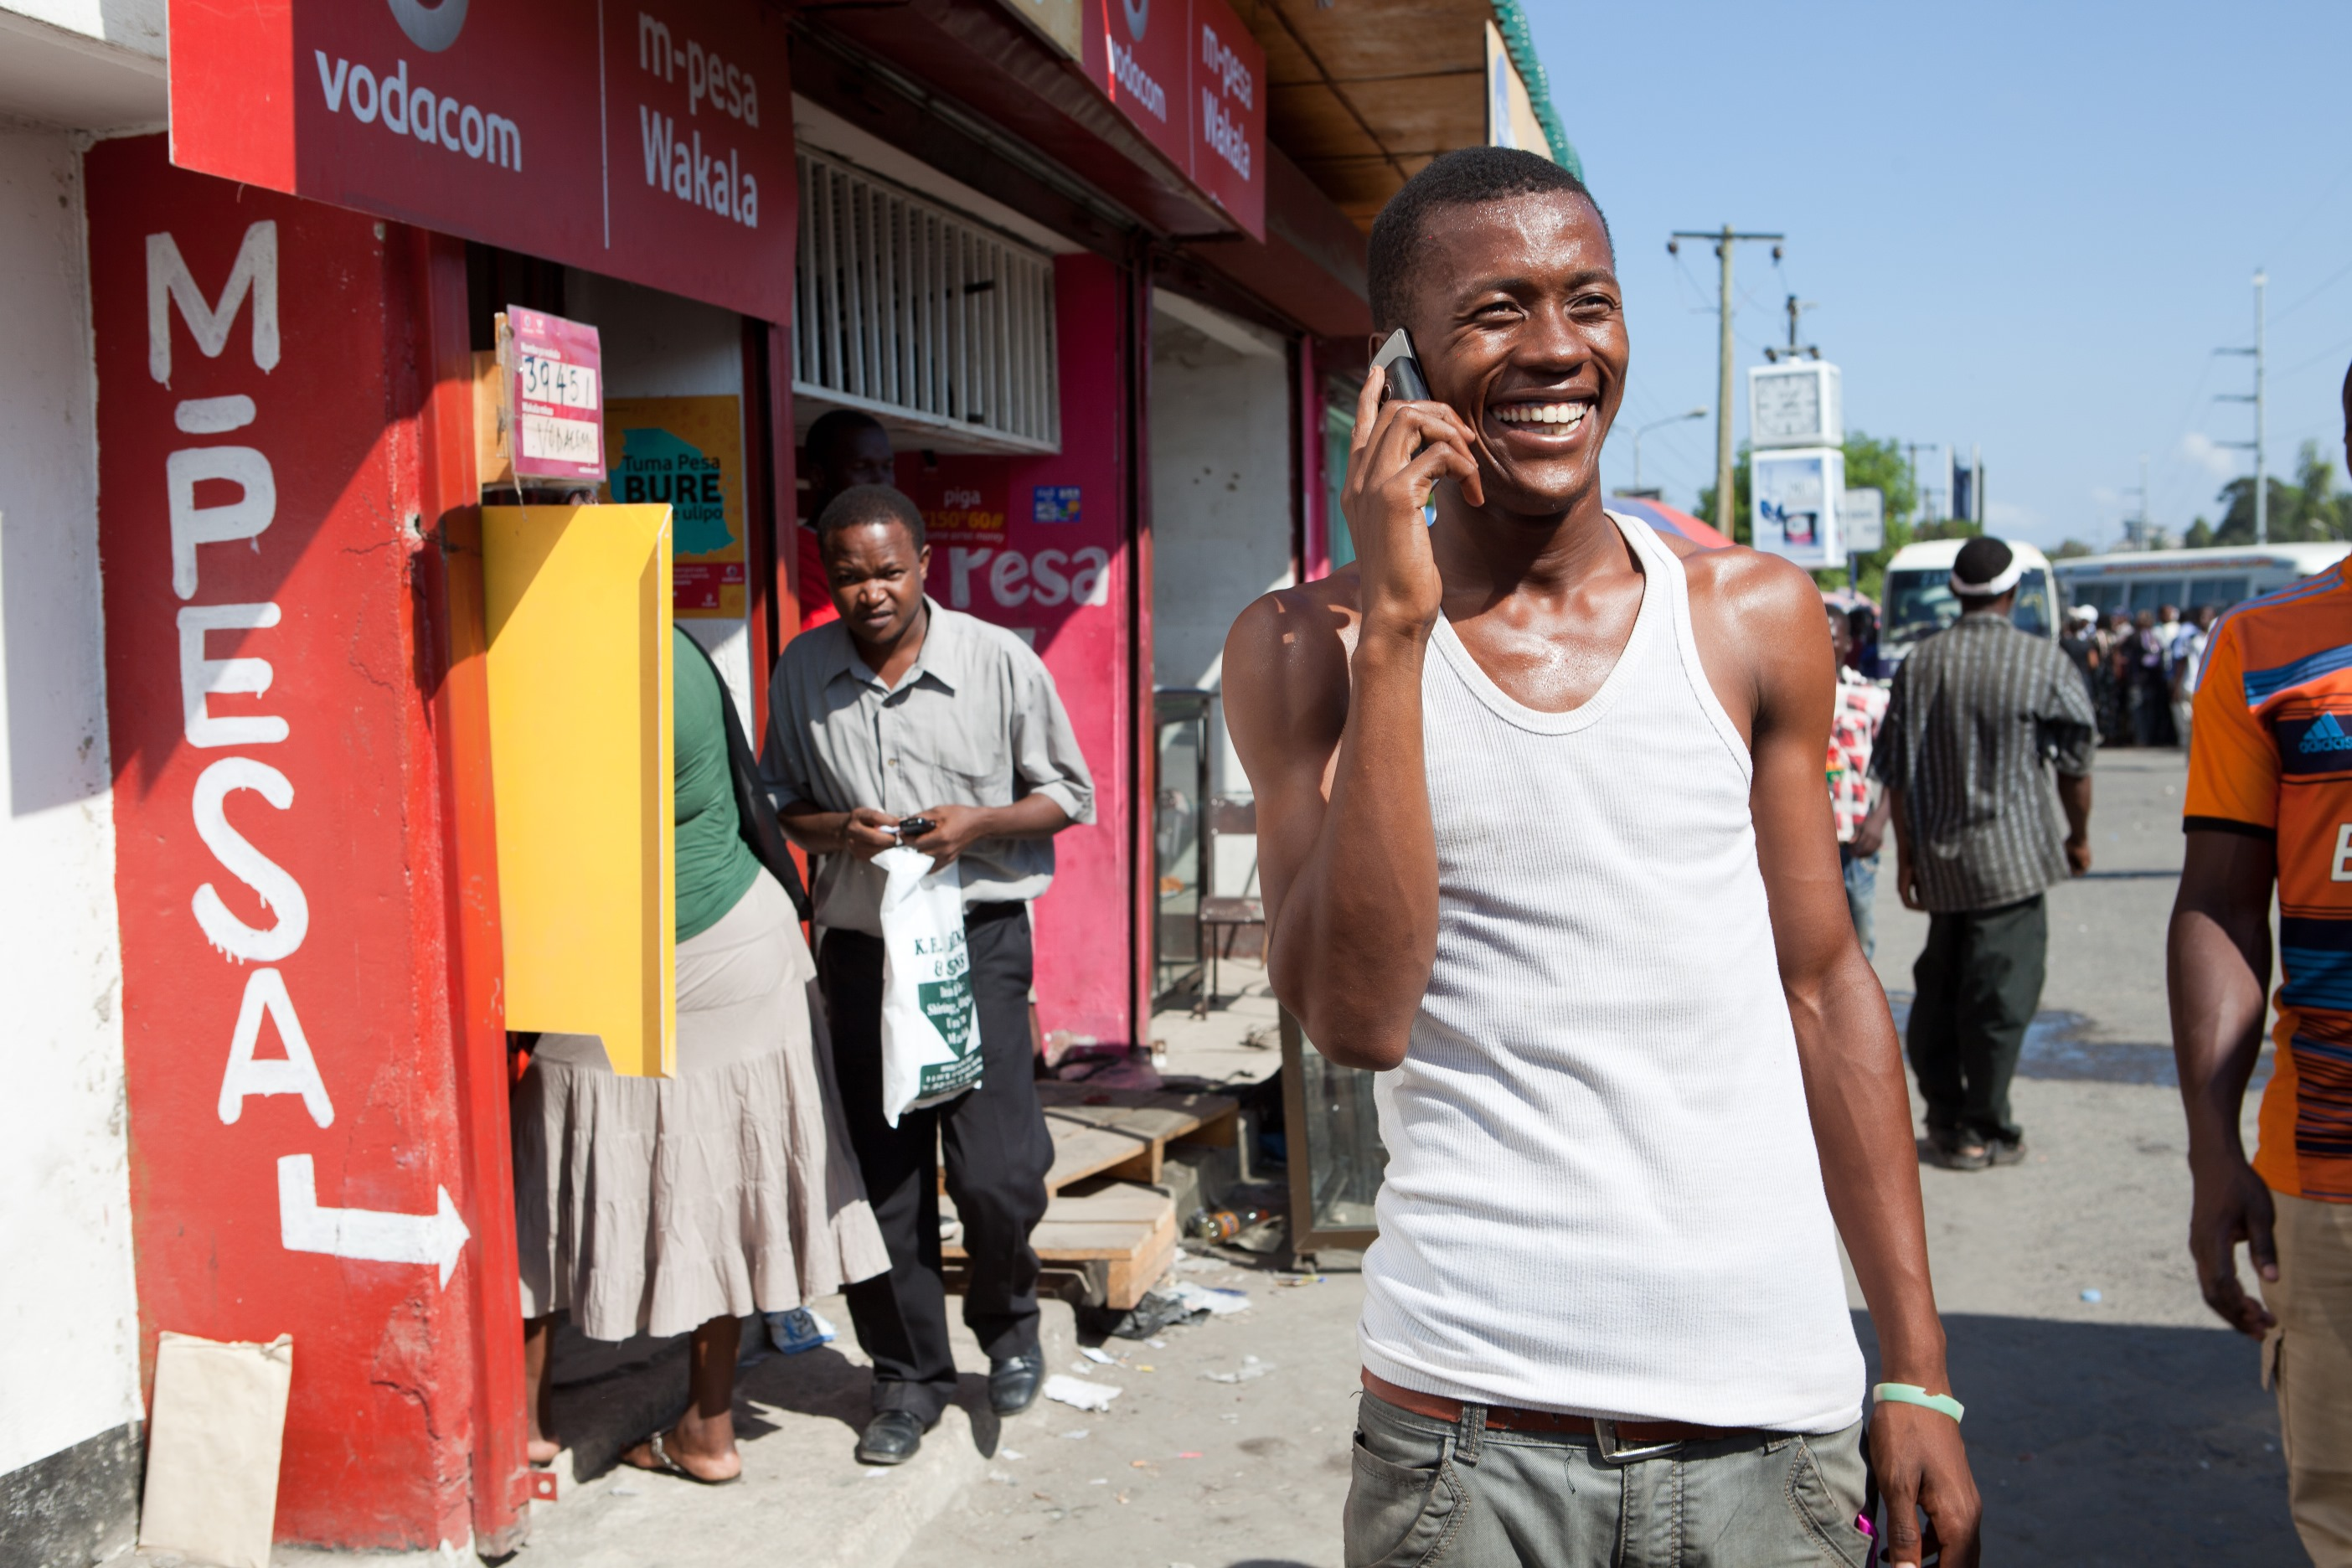 http://mobilemarketingmagazine.com/wp-content/uploads/2015/08/M-Pesa-Mobile-Money-User-Tanzania-Africa.jpg